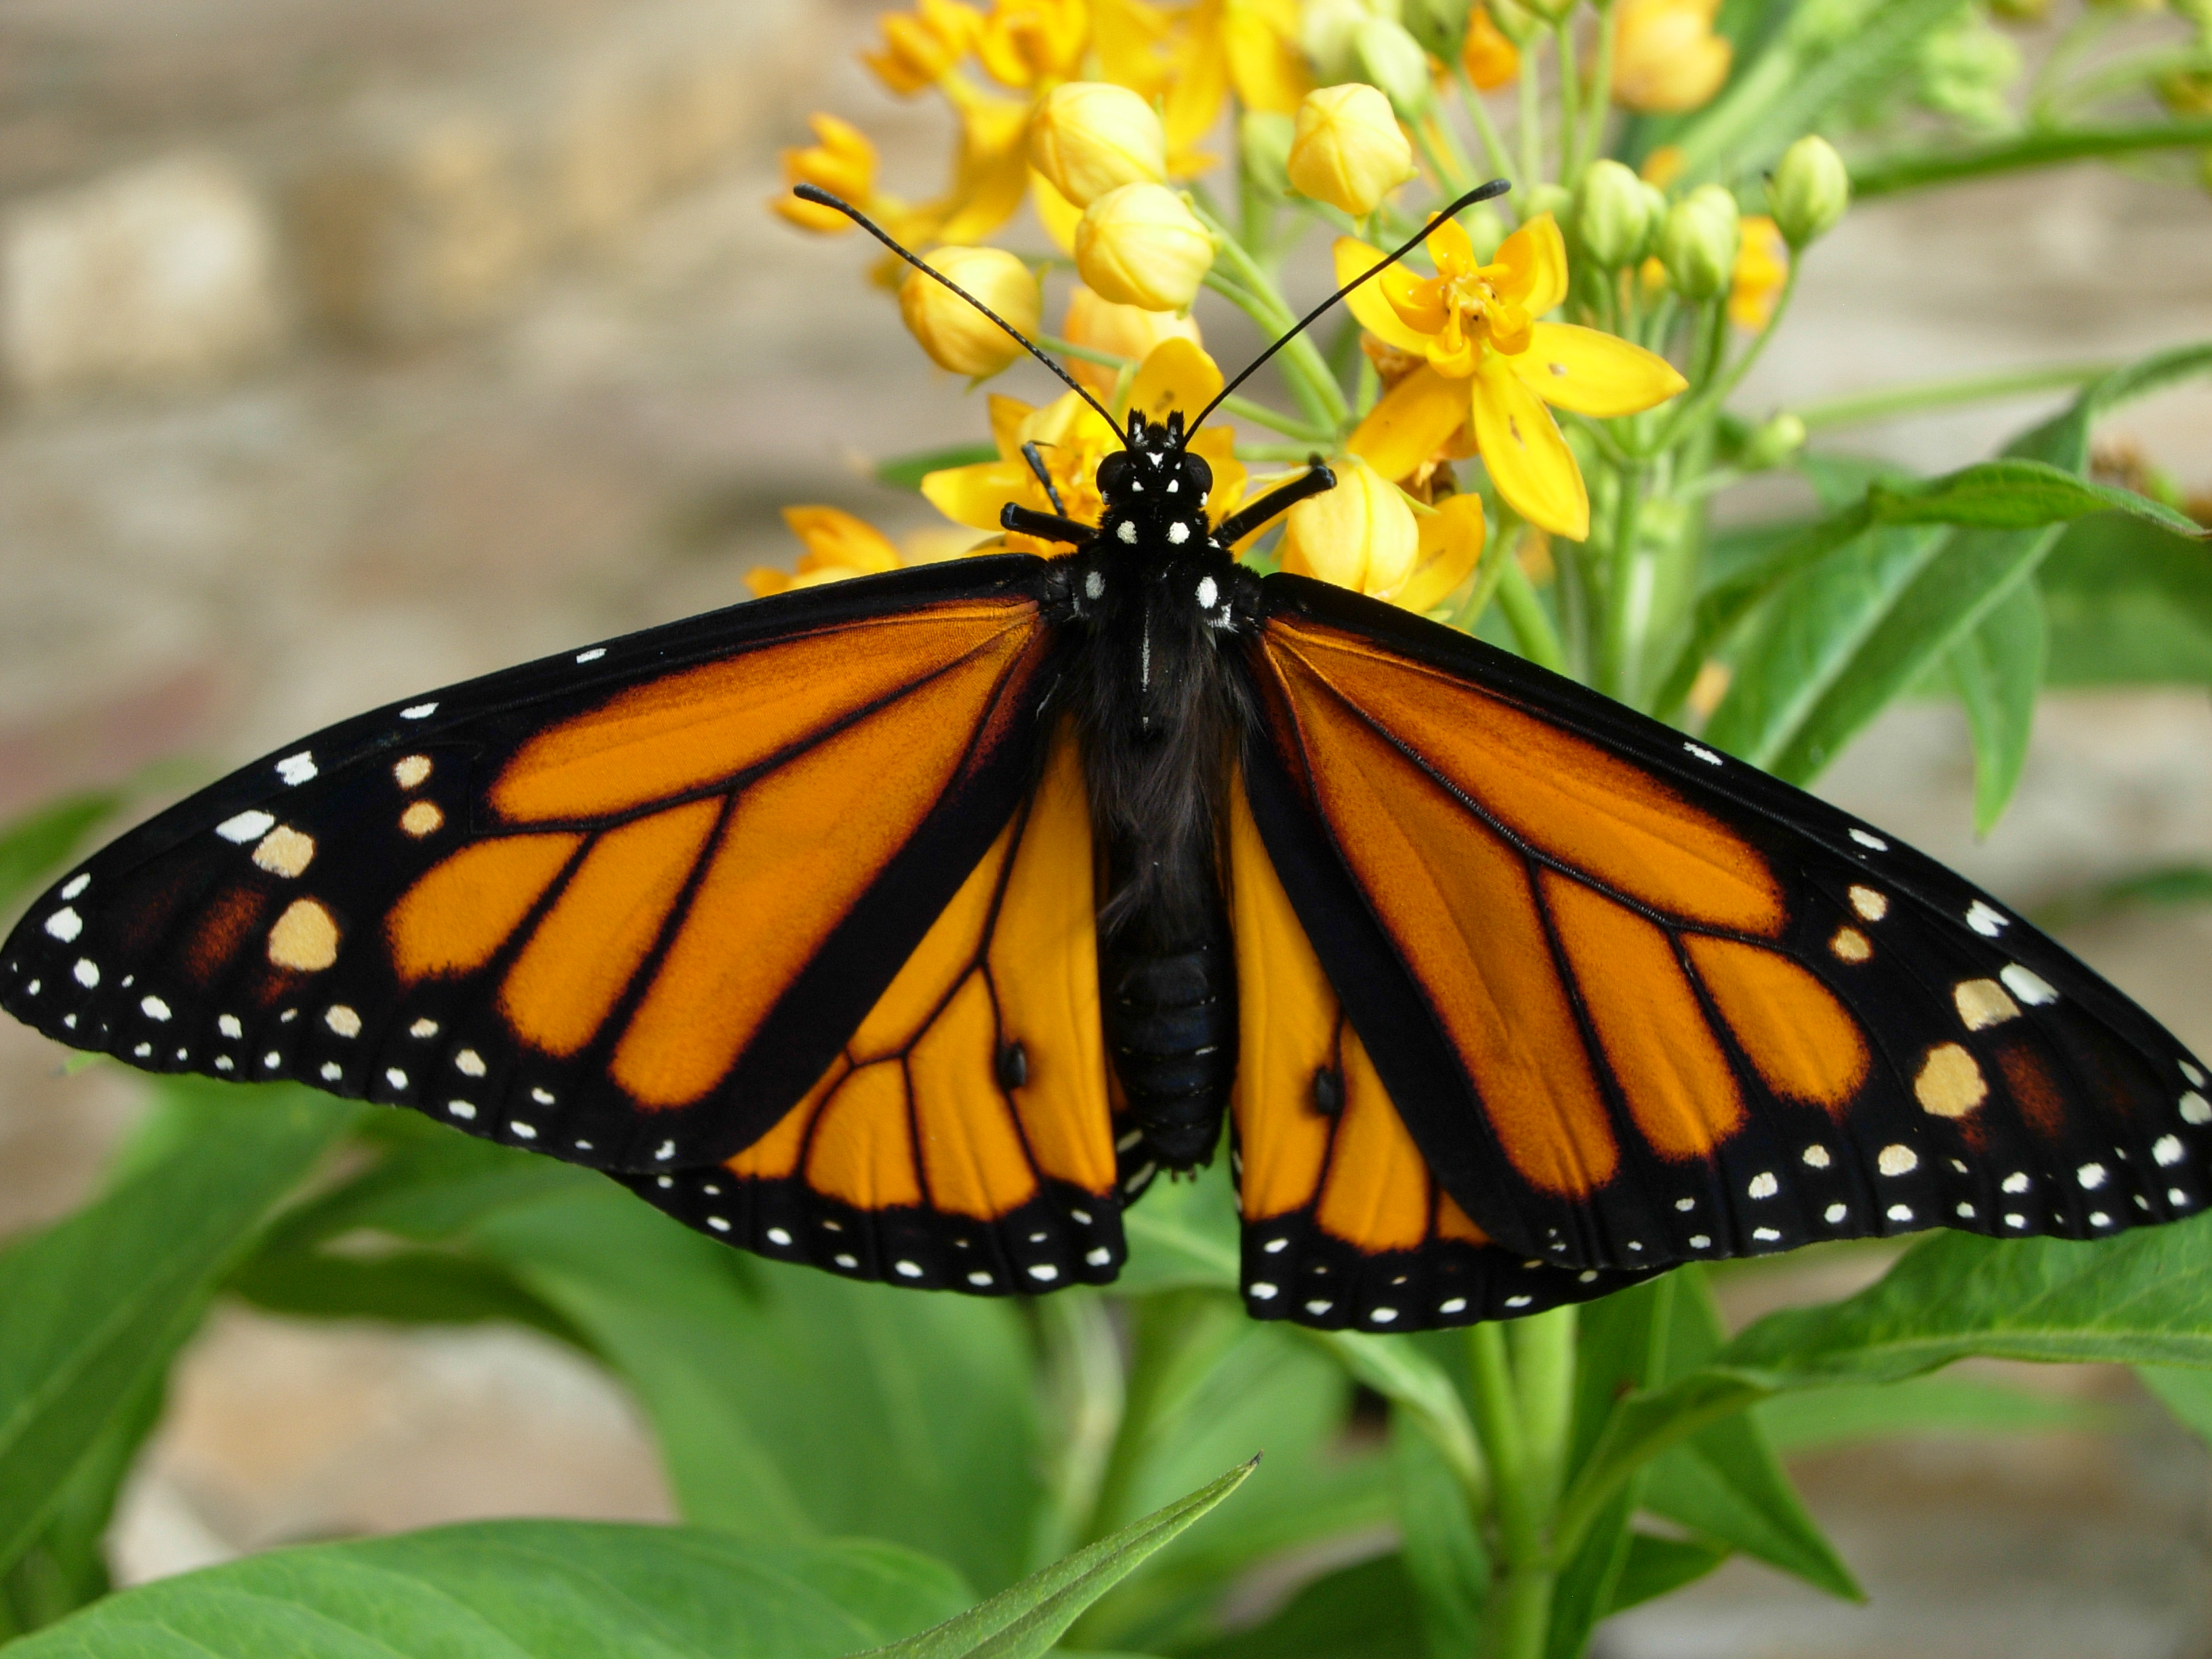 Monarch Butterfly Annual Cycle monthbymonth where are